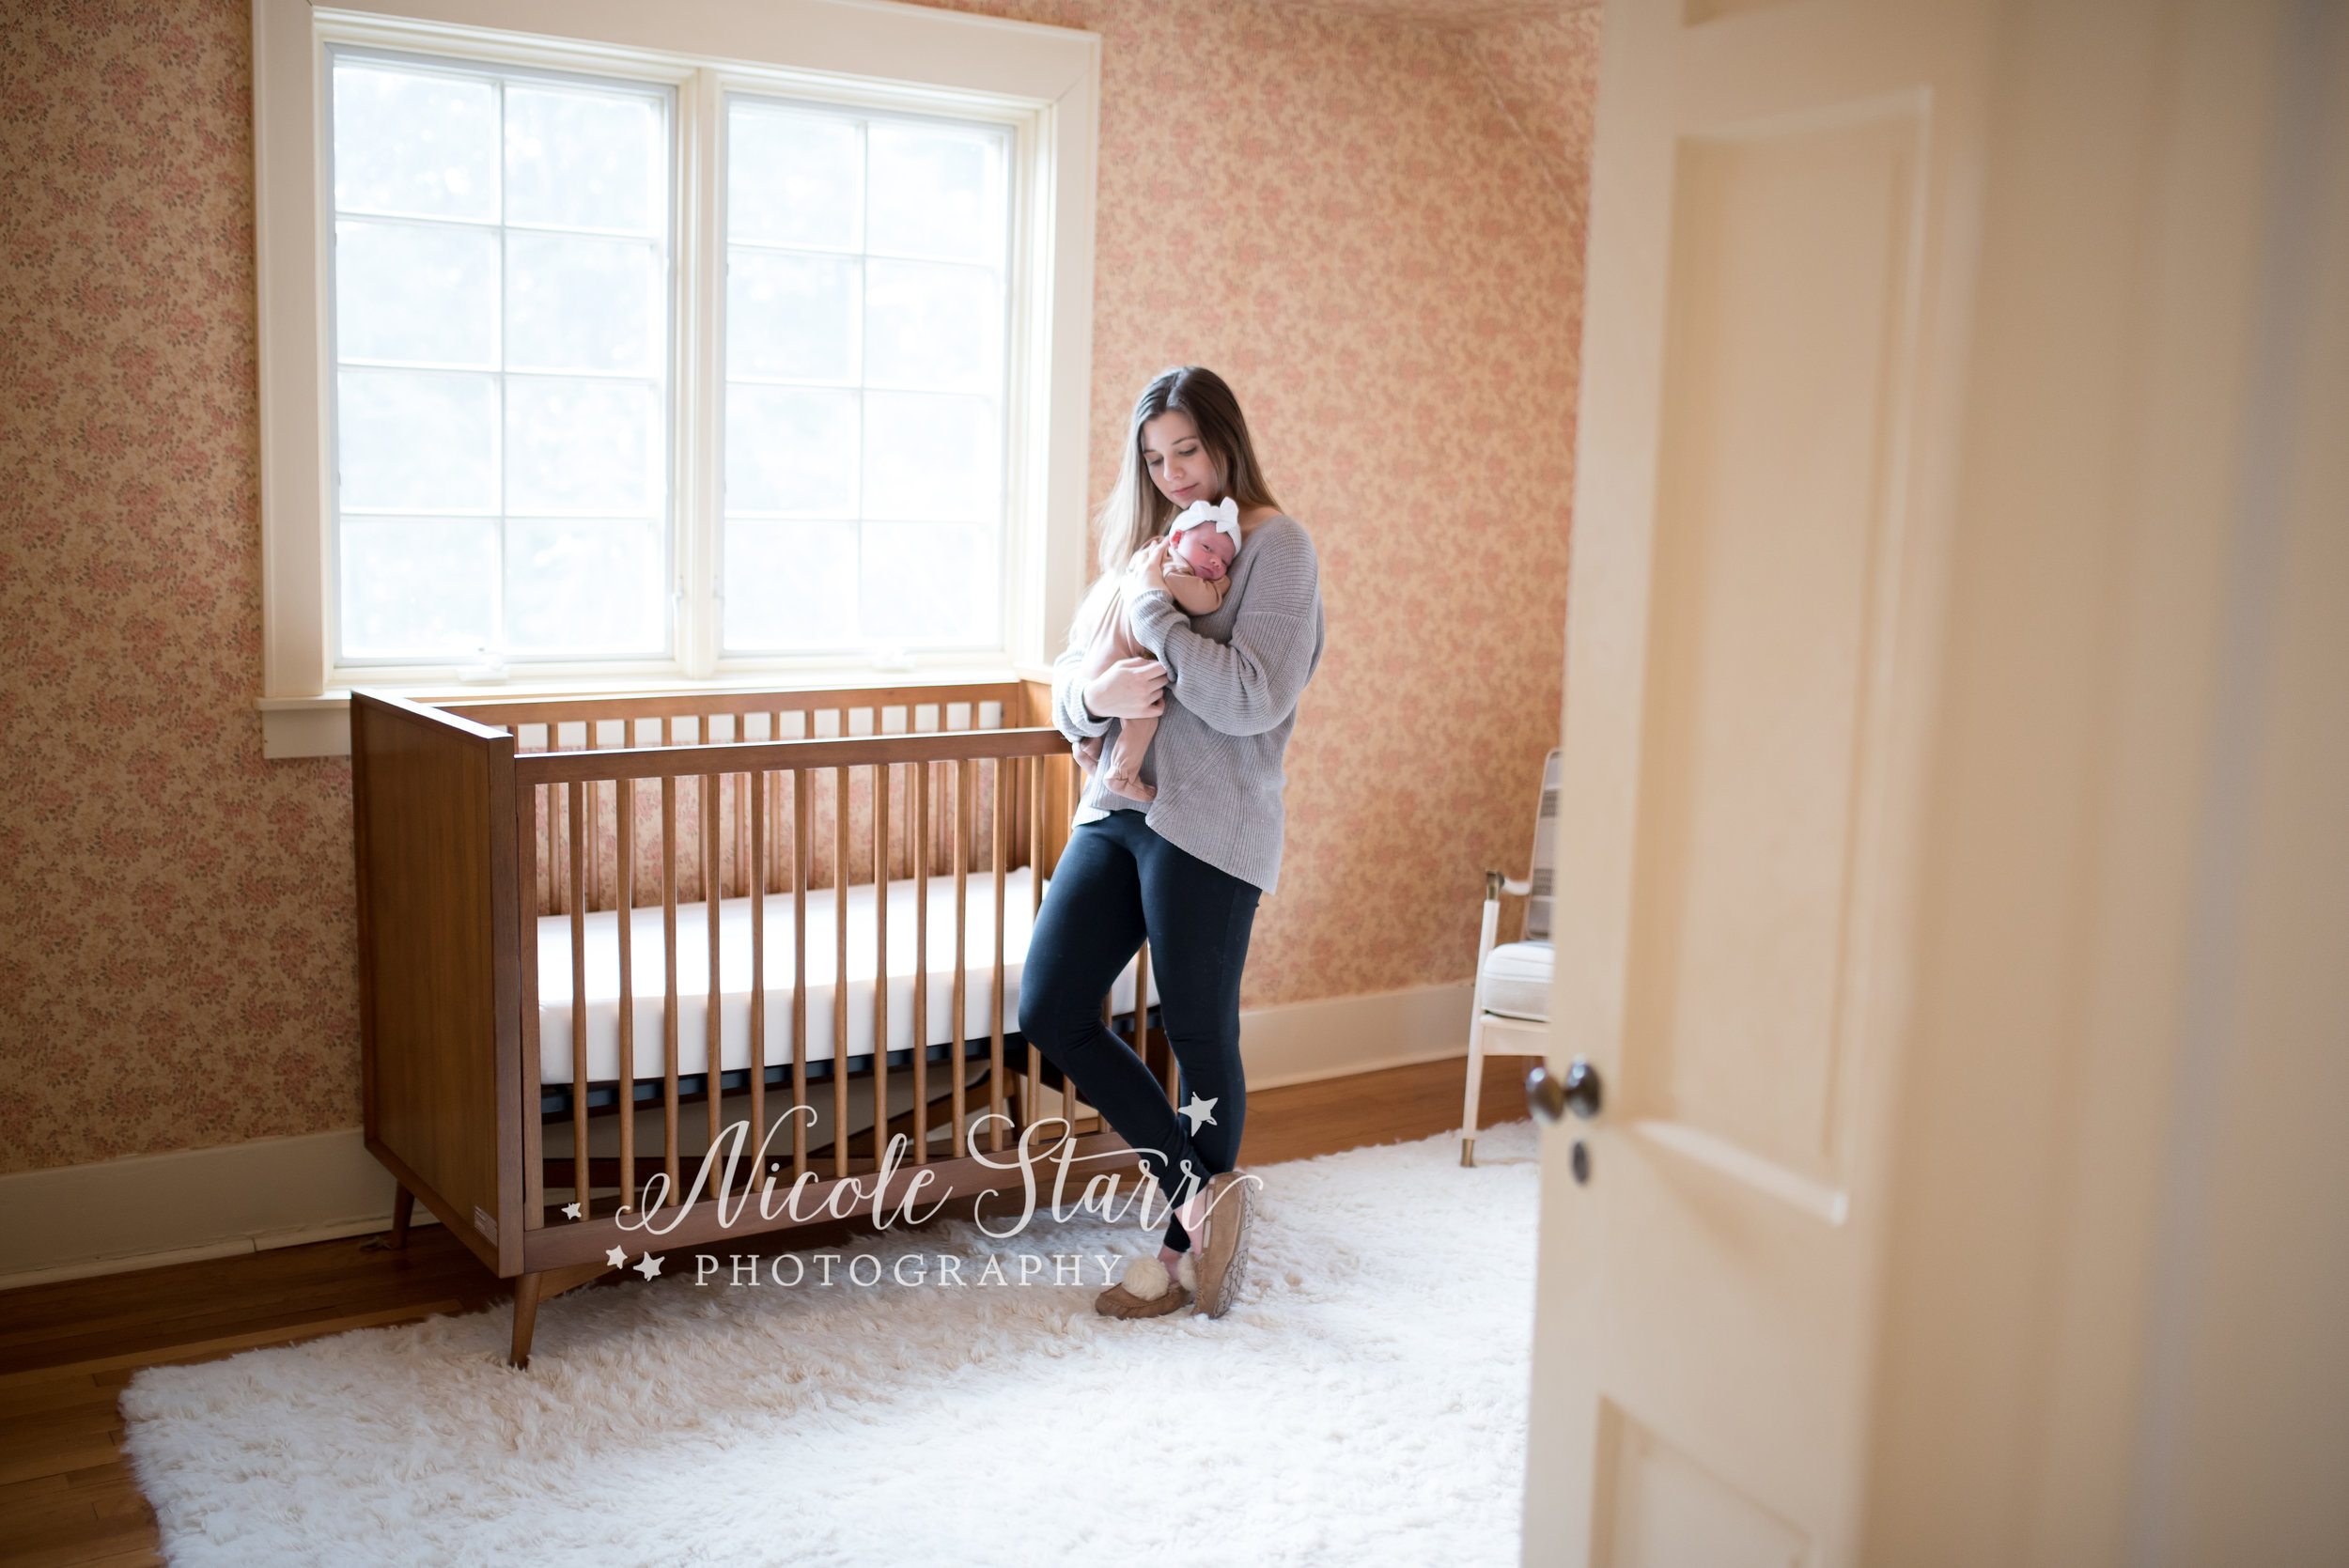 Nicole Starr Photography | Saratoga Springs Newborn Photographer | Boston Newborn Photographer | Saratoga Springs Lifestyle Newborn Photographer | Boston Lifestyle Newborn Photographer | Delmar NY Lifestyle Newborn Photographer | Loudonville Lifestyle Newborn Photographer